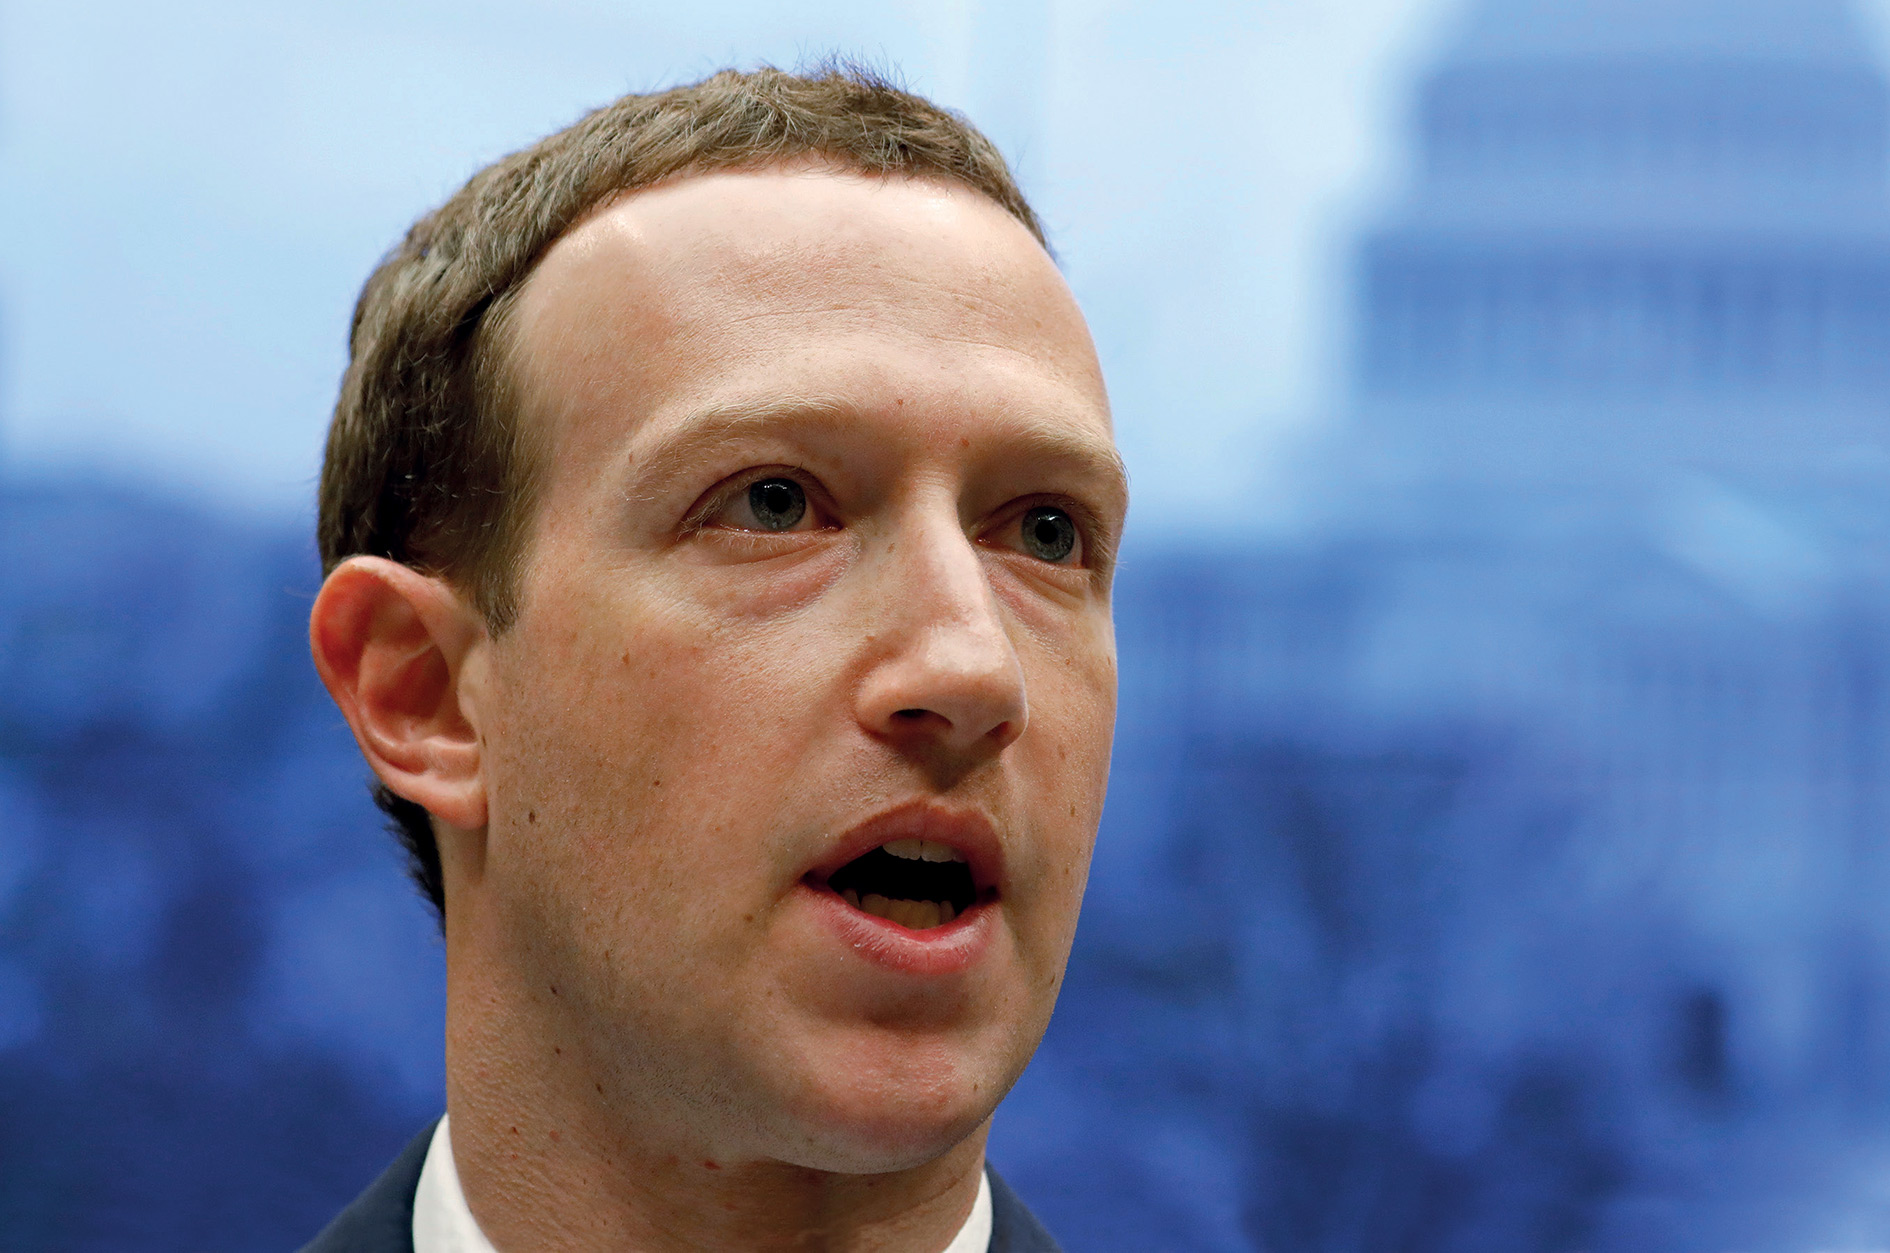 Facebook's all-powerful Mark Zuckerberg dodged awkward questions, citing unfamiliarity with the law.